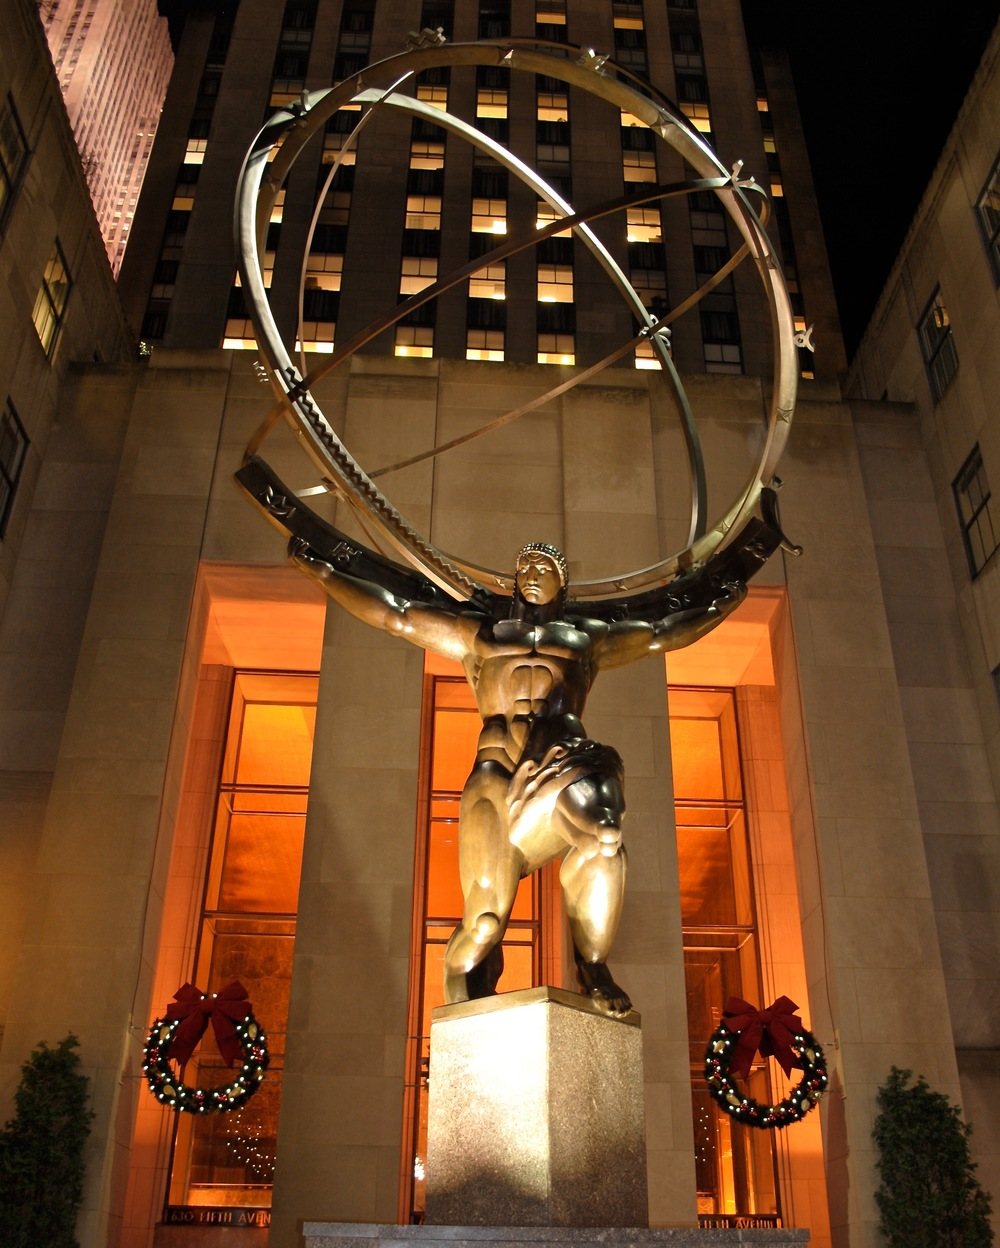 Atlas Statue in front of Rockefeller Center in midtown Manhattan